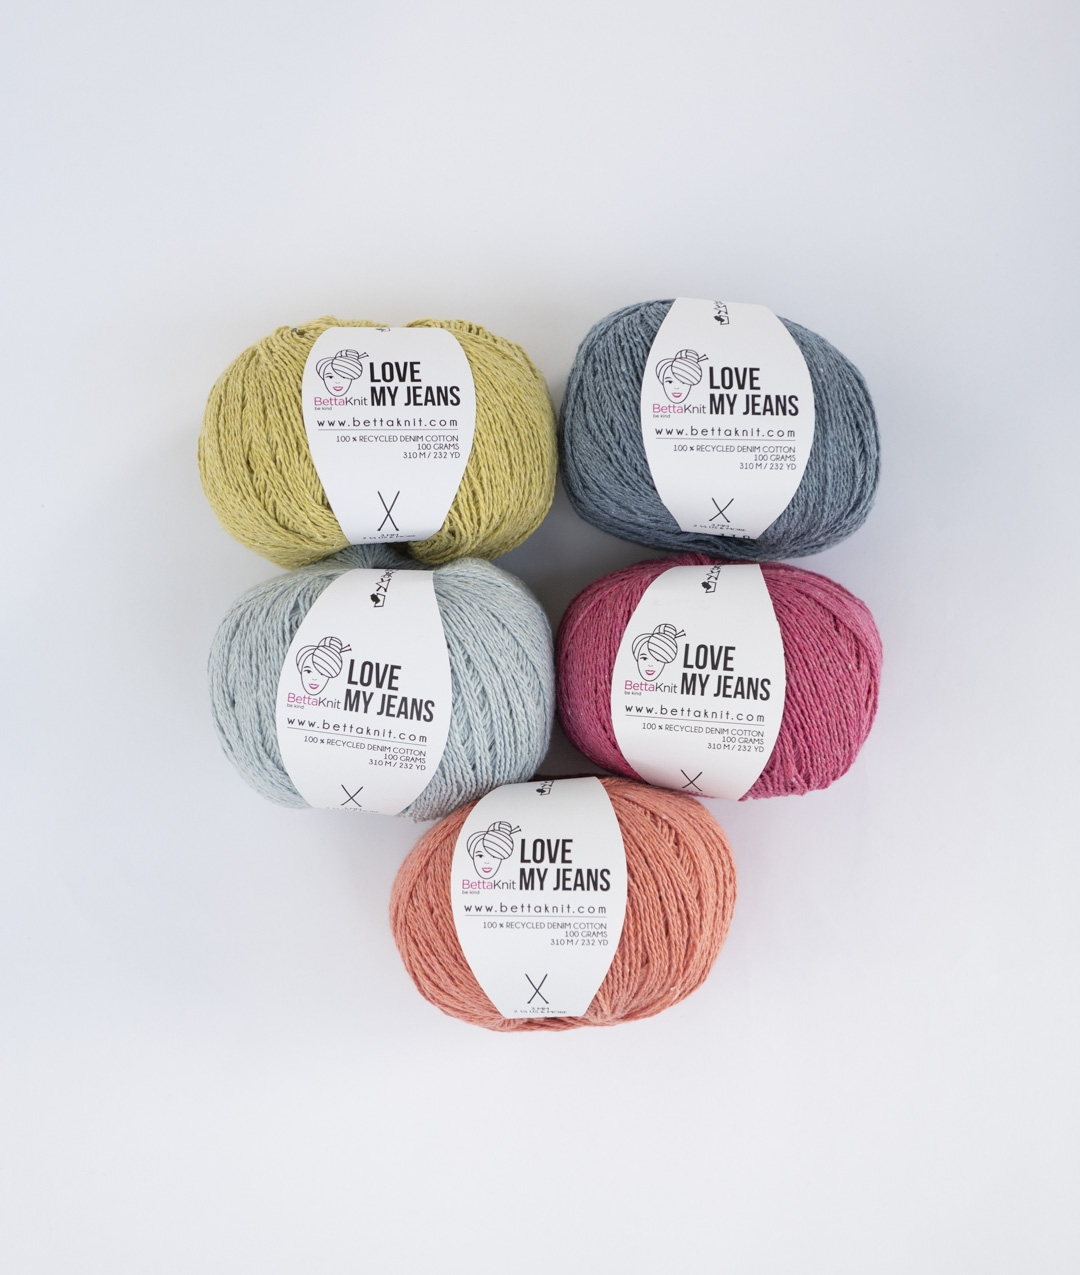 Pack of Yarn - Love My Jeans Pack - 5 balls  - 1